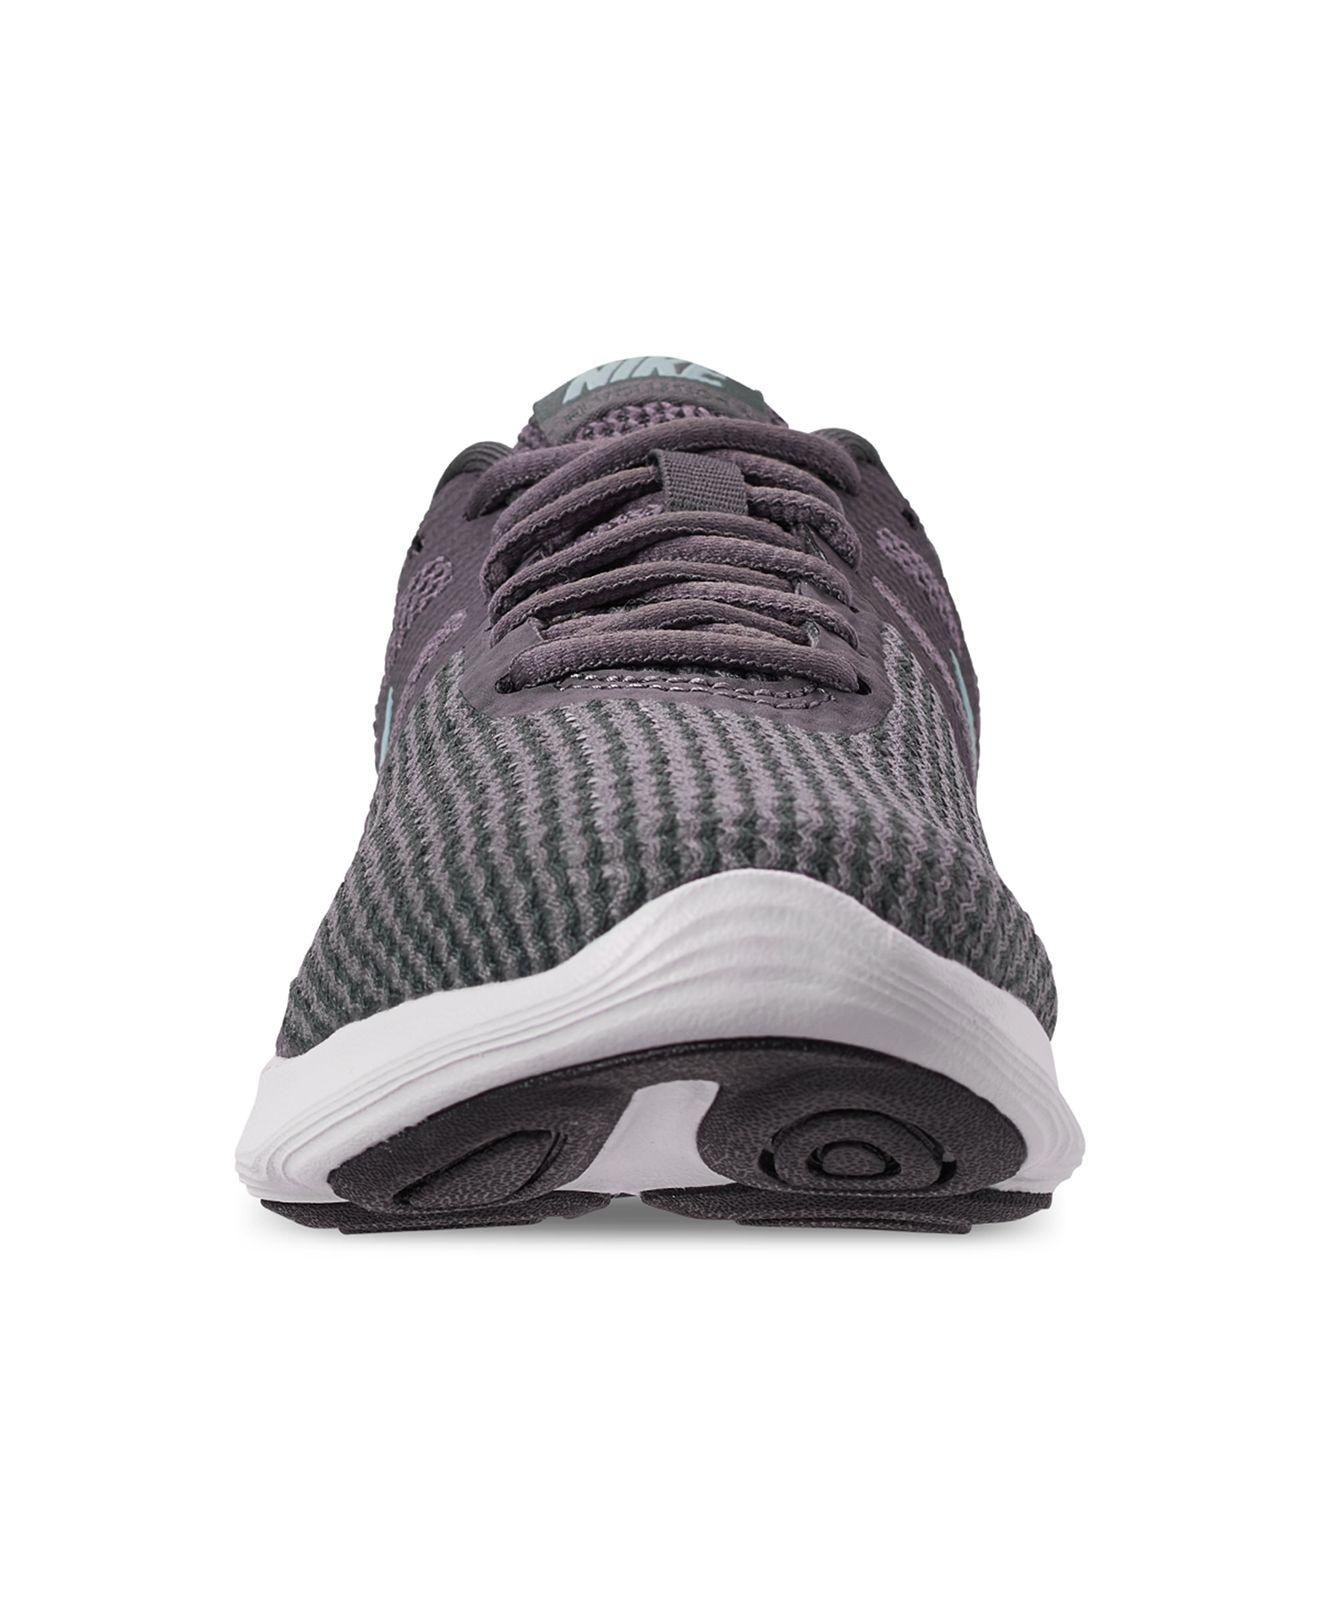 7f7b0ee15aa2 Nike - Multicolor Revolution 4 Wide Width Running Sneakers From Finish Line  - Lyst. View fullscreen